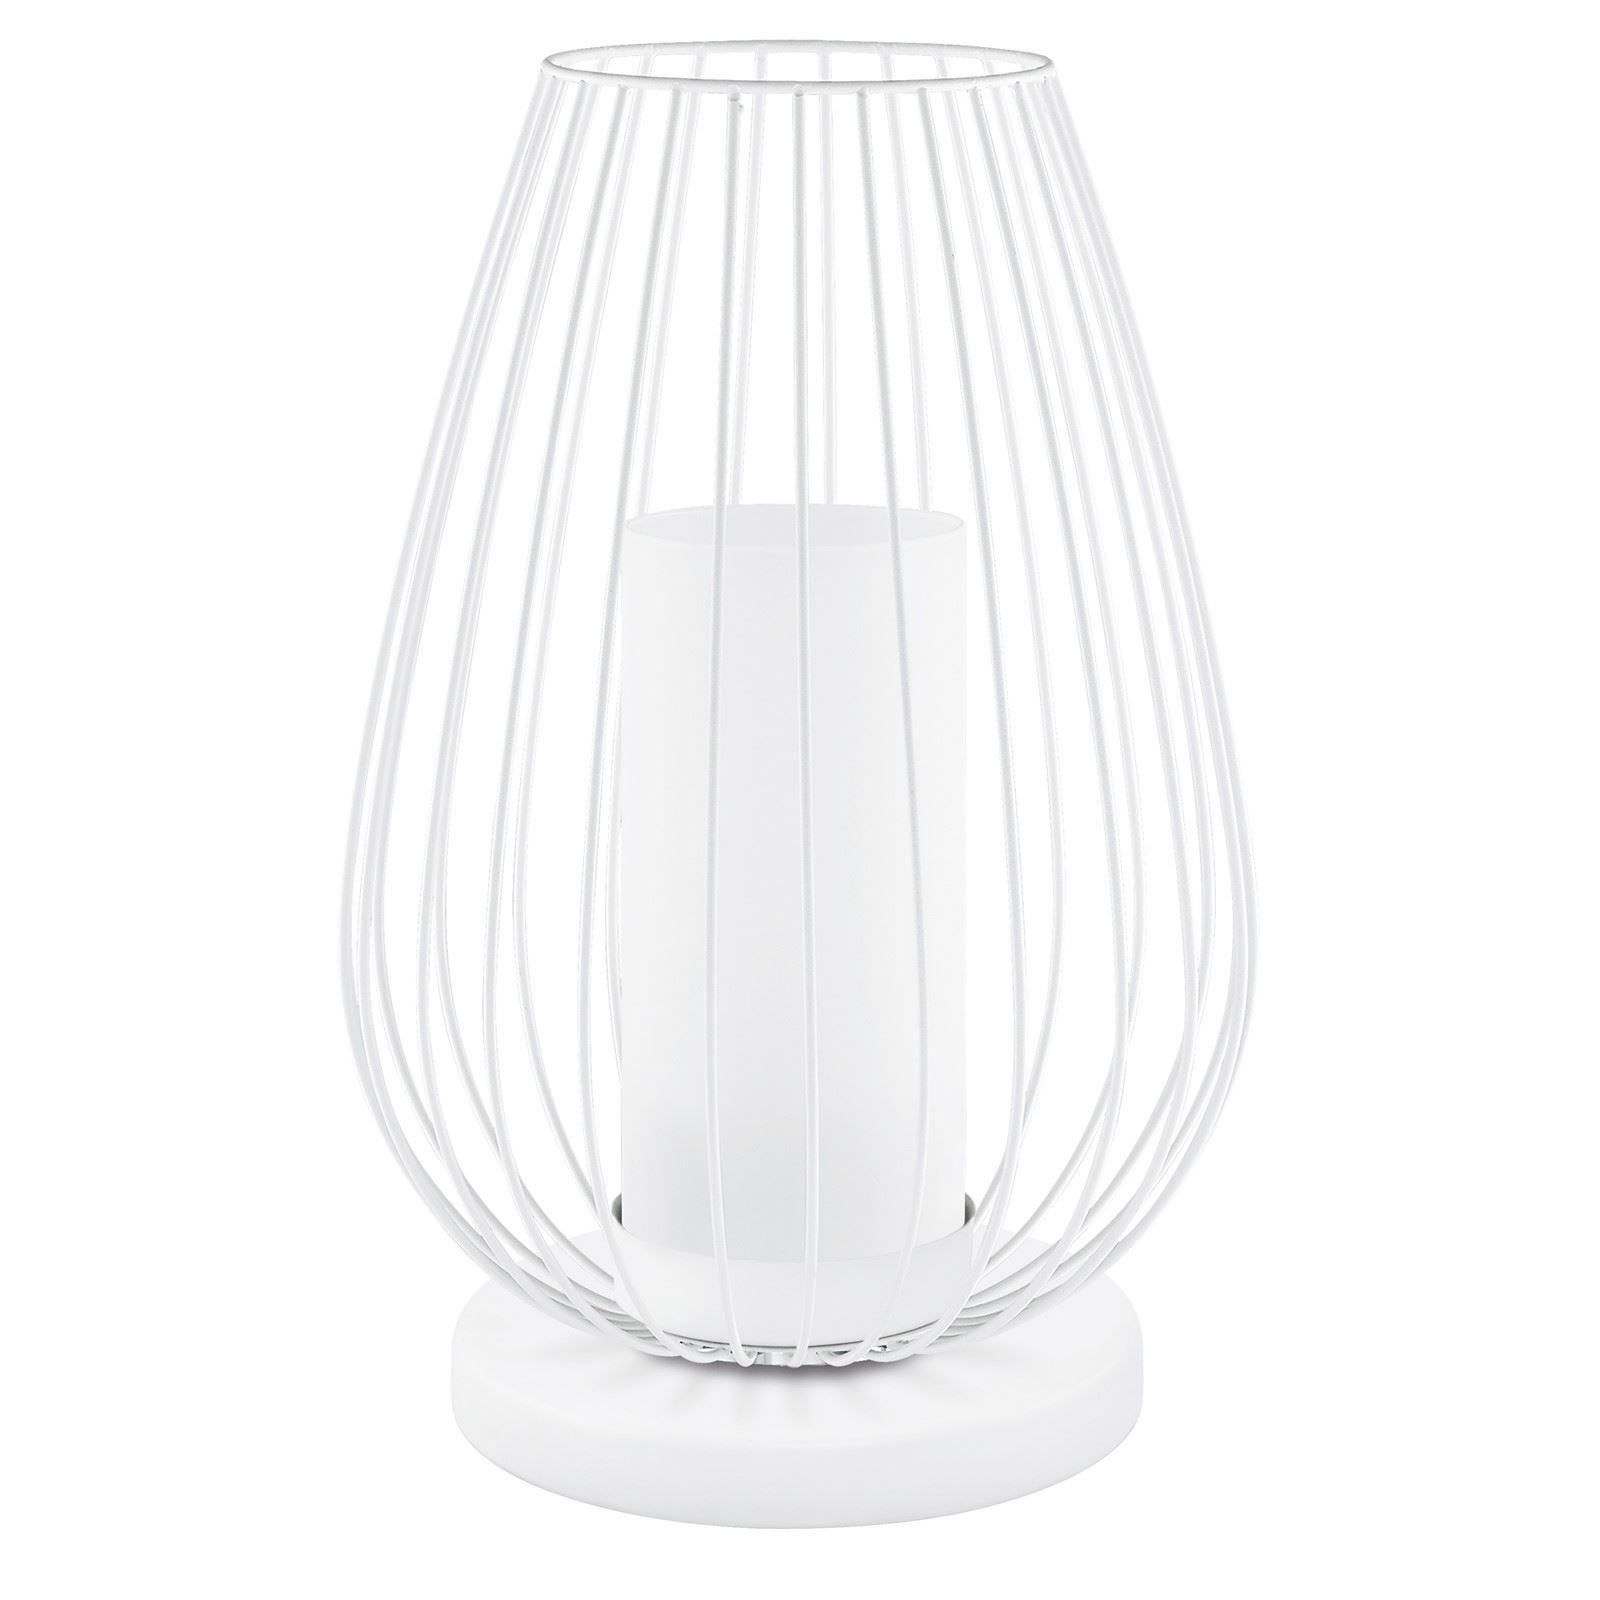 Vencino Modern Led-Table Lamp 1 Light Satinated Glass Shade